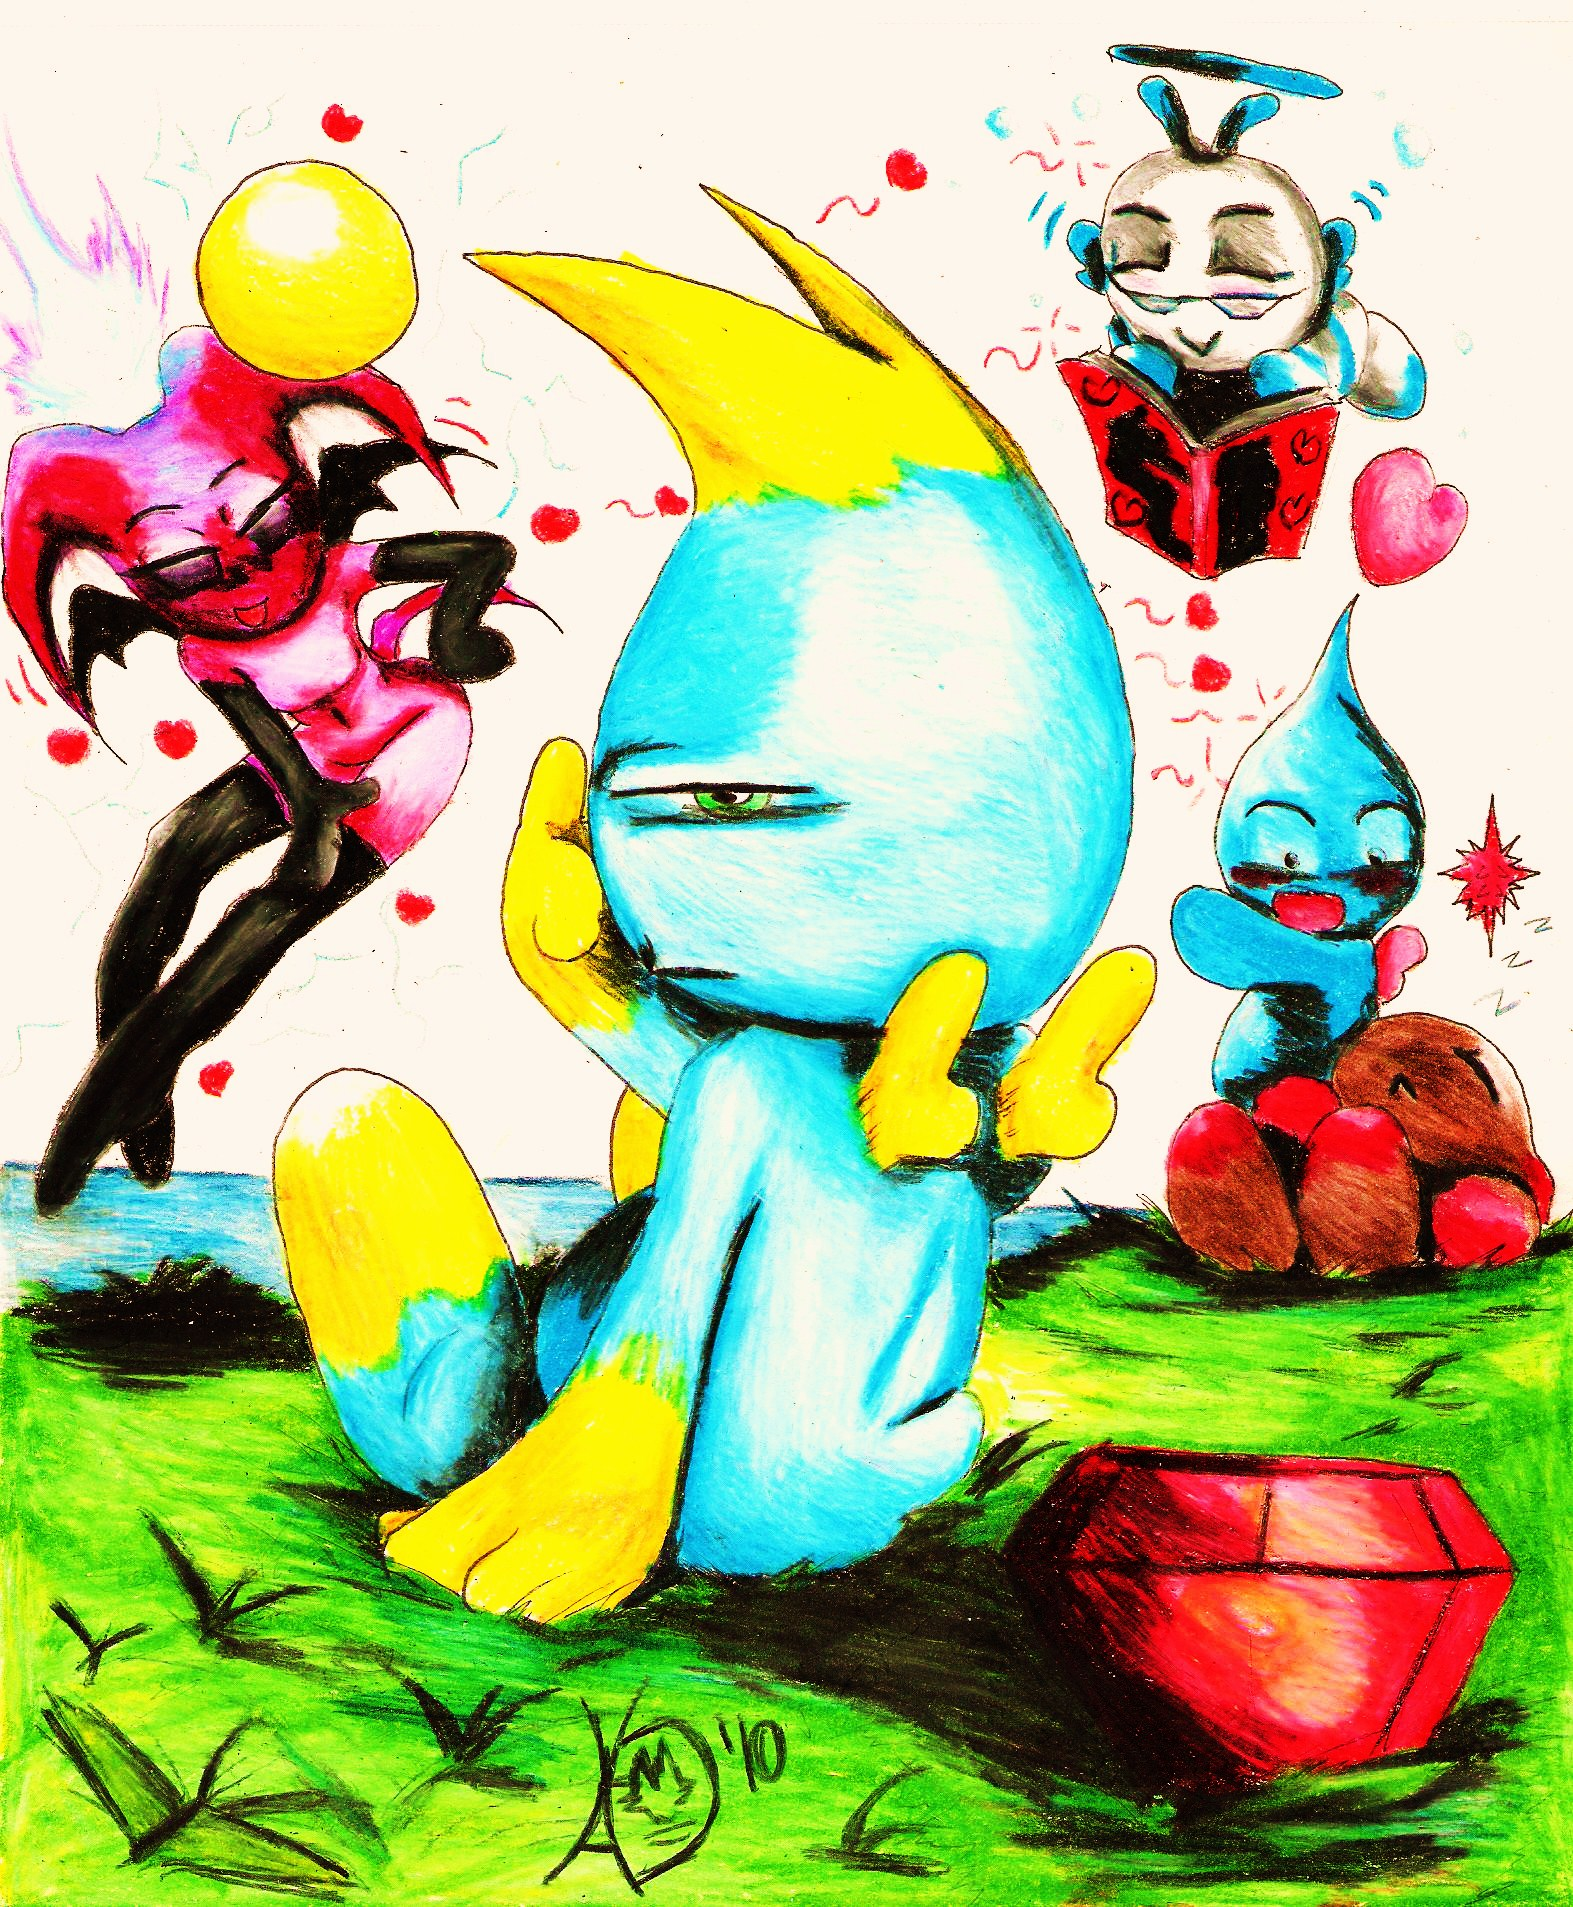 Messed Up Chao